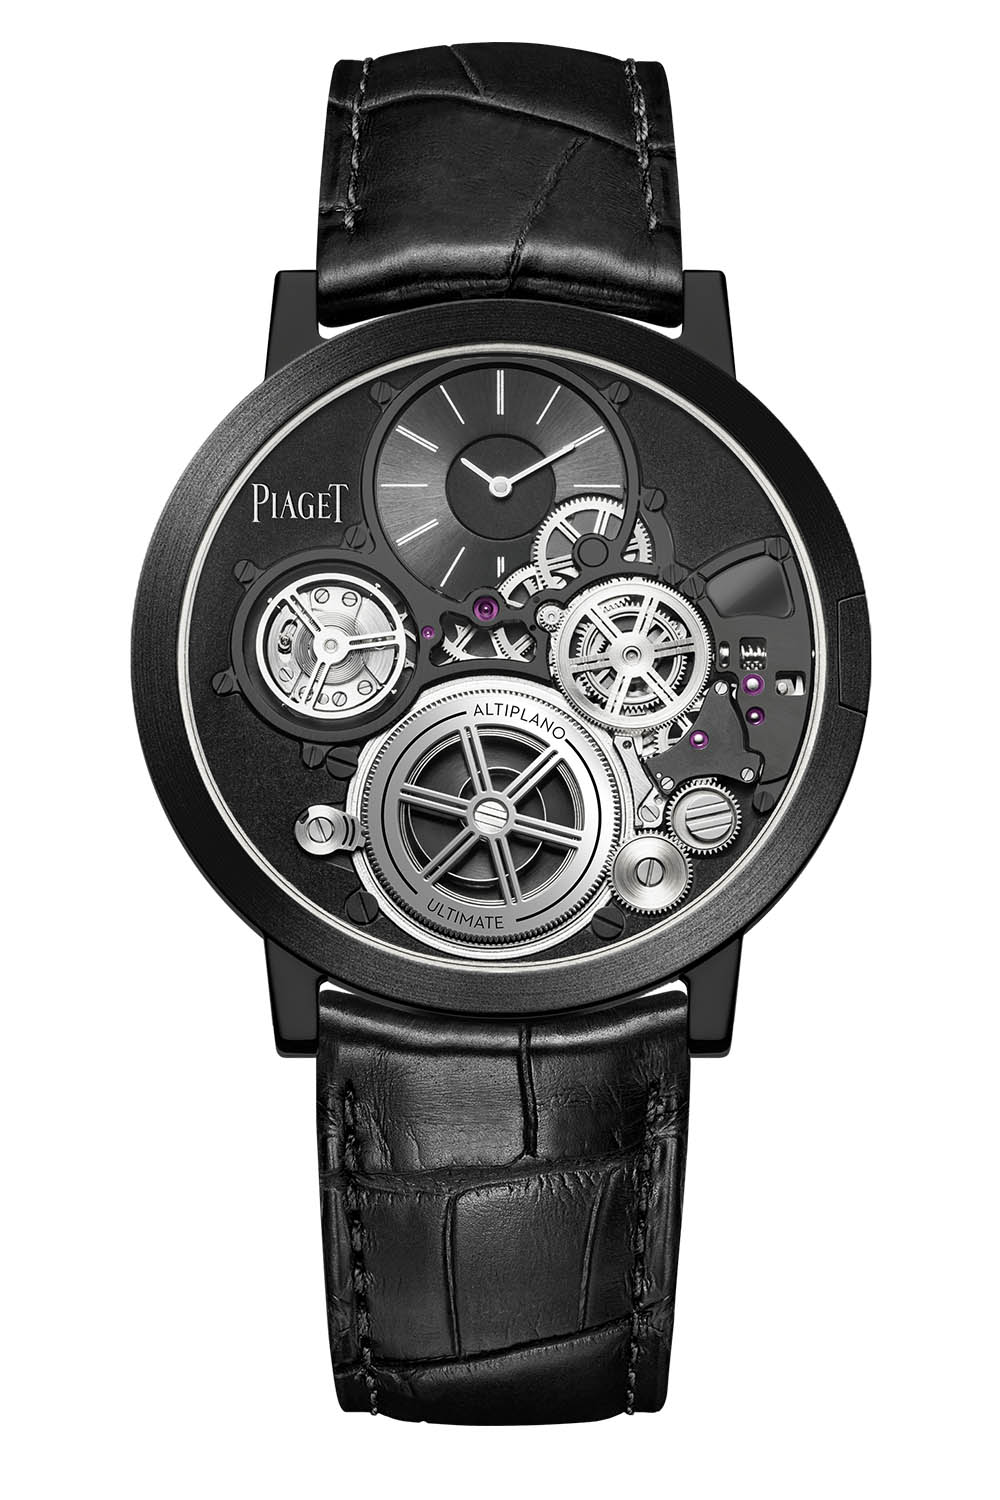 Piaget Altiplano Ultimate Concept 2020 - 5